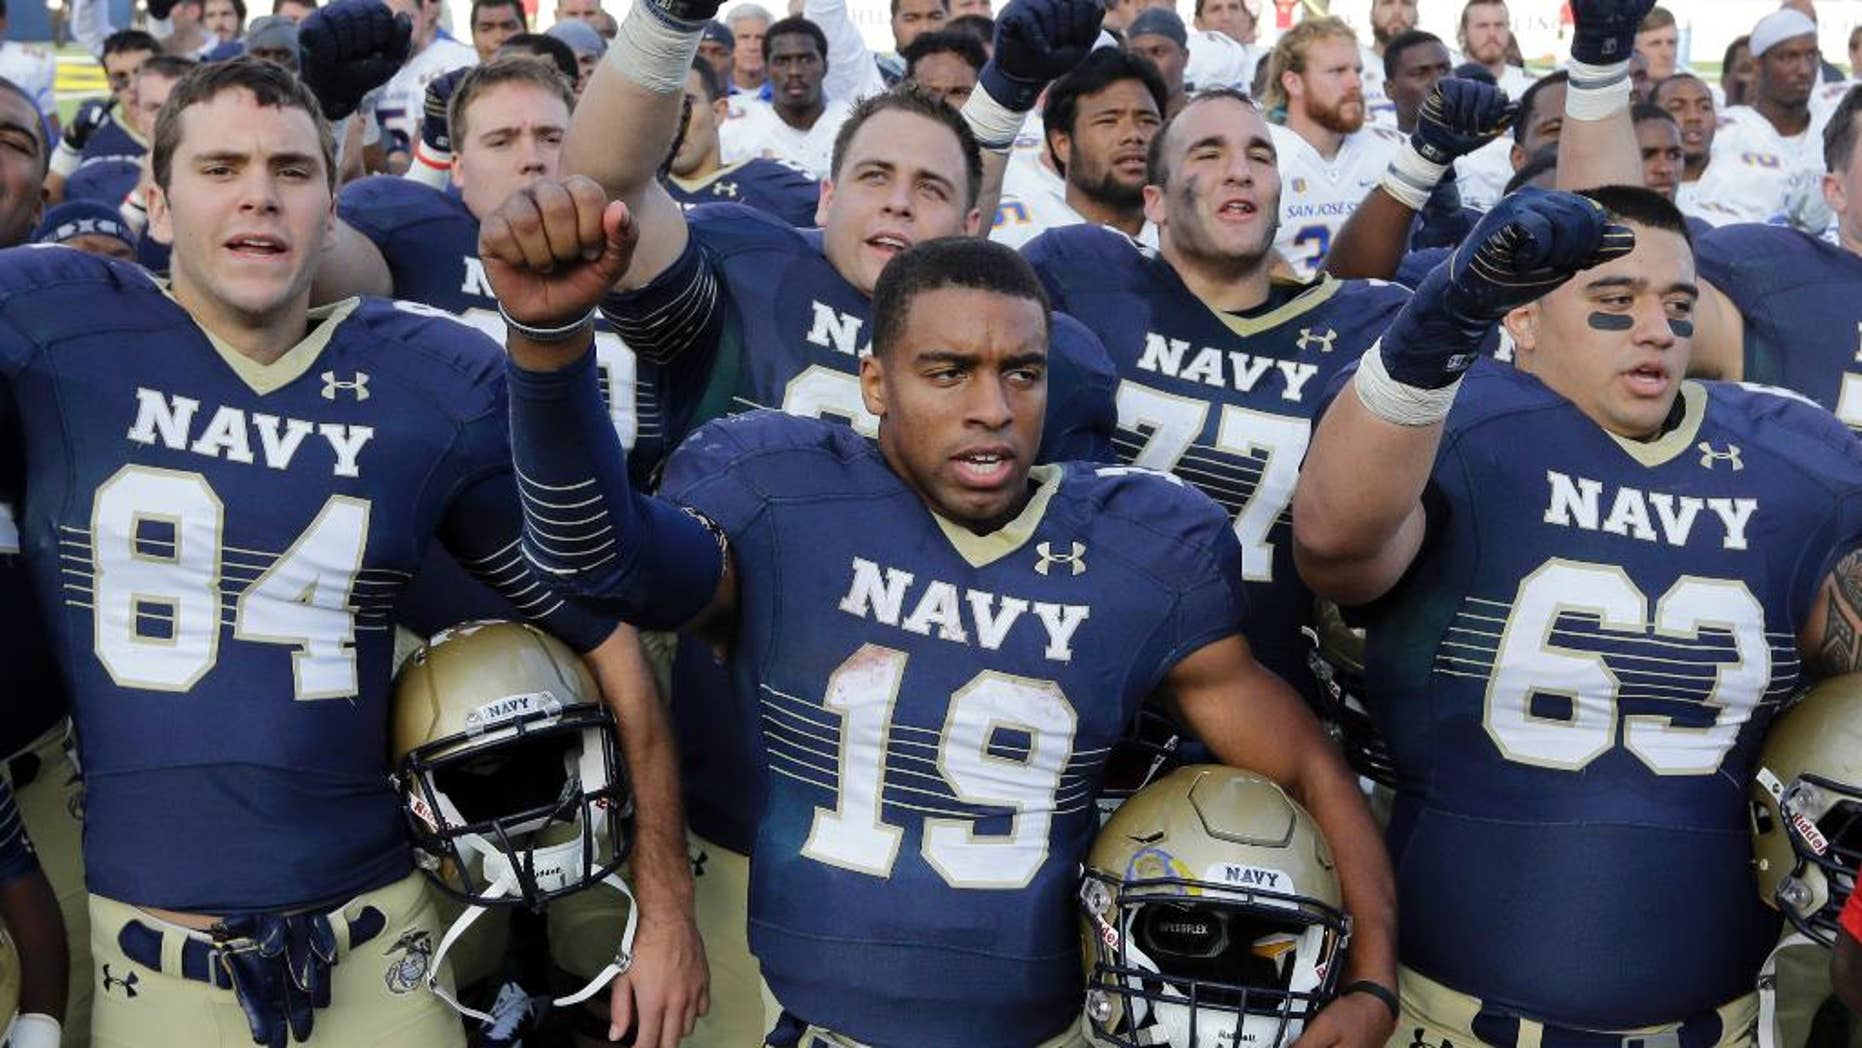 Navy quarterback Keenan Reynolds (19) sings the U.S. Naval Academy's alma mater alongside teammates after an NCAA college football game against San Jose State in Annapolis, Md., Saturday, Oct. 25, 2014. Navy won 41-31. (AP Photo/Patrick Semansky)